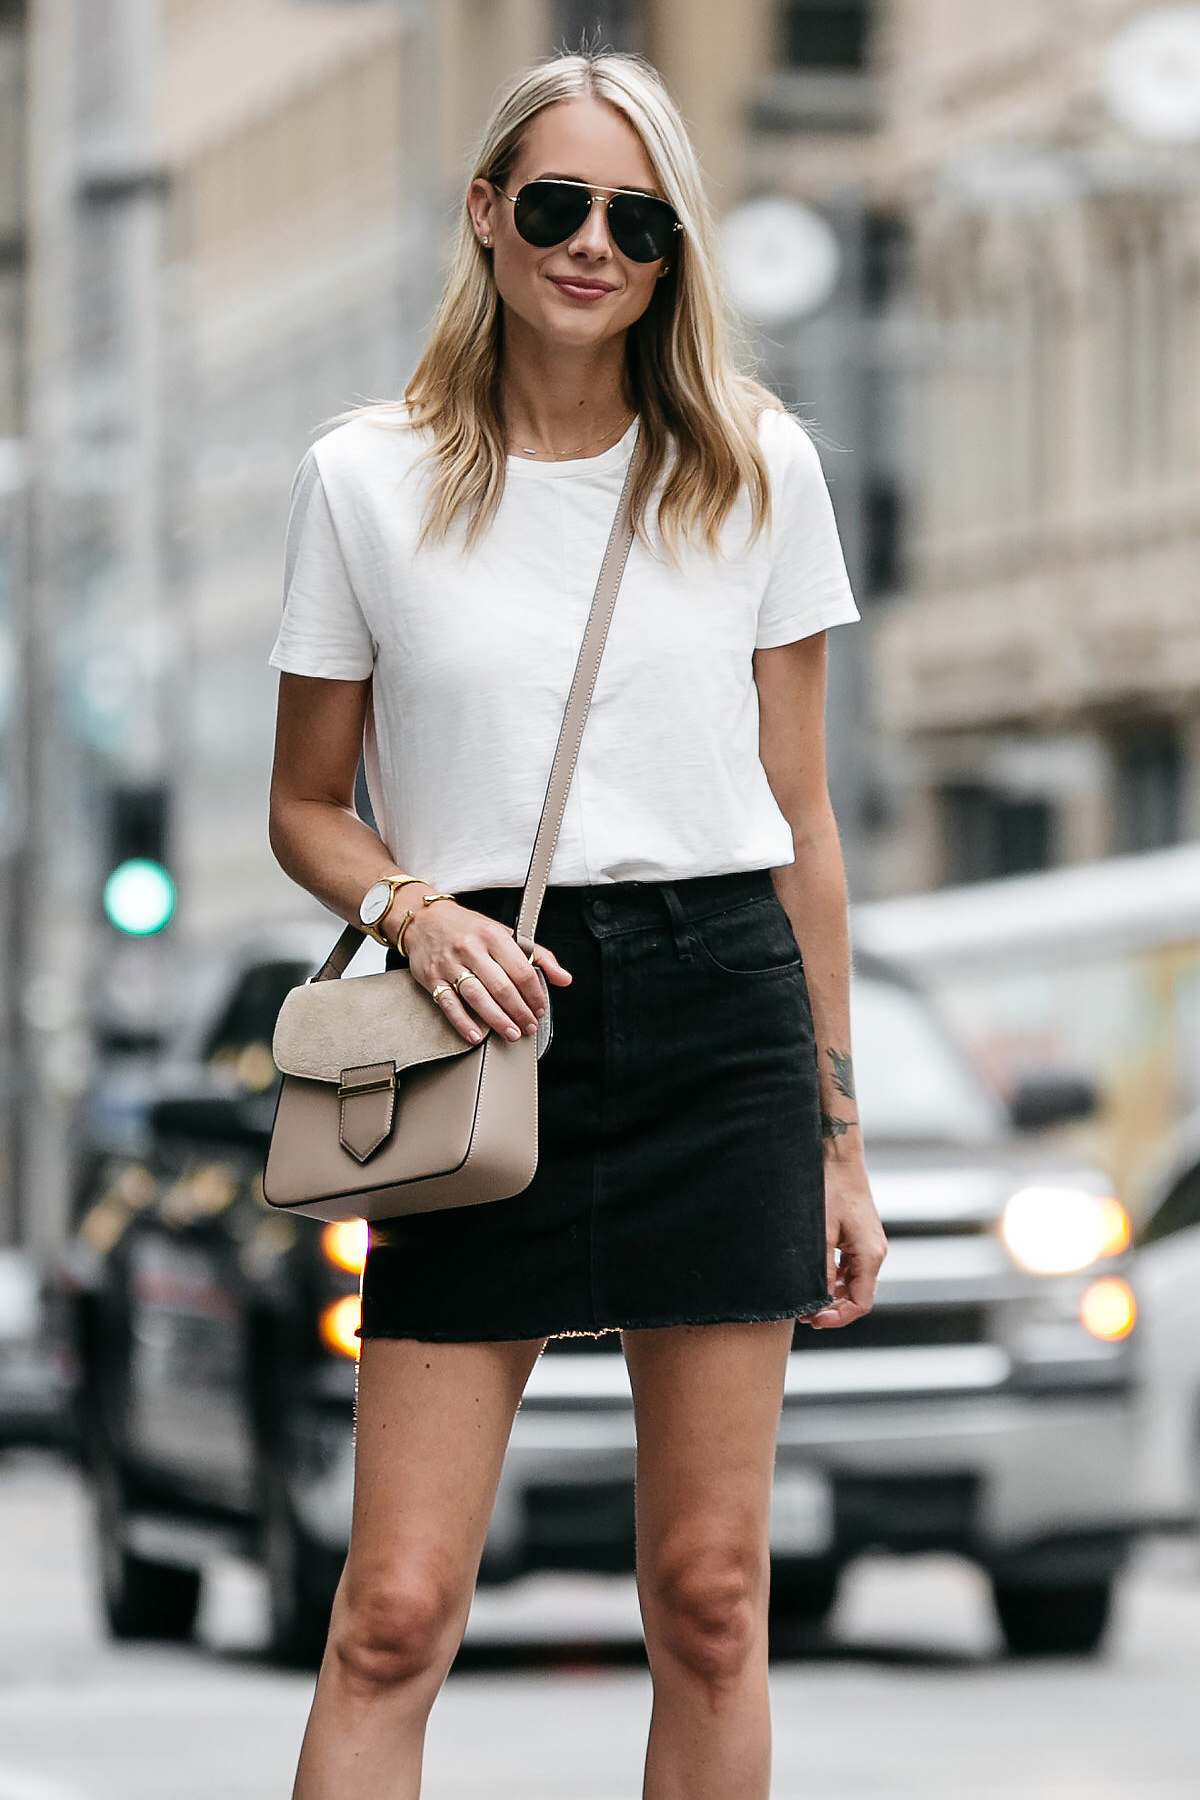 Blonde woman wearing white tshirt frame black denim skirt outfit tan crossbody handbag street style dallas blogger fashion blogger